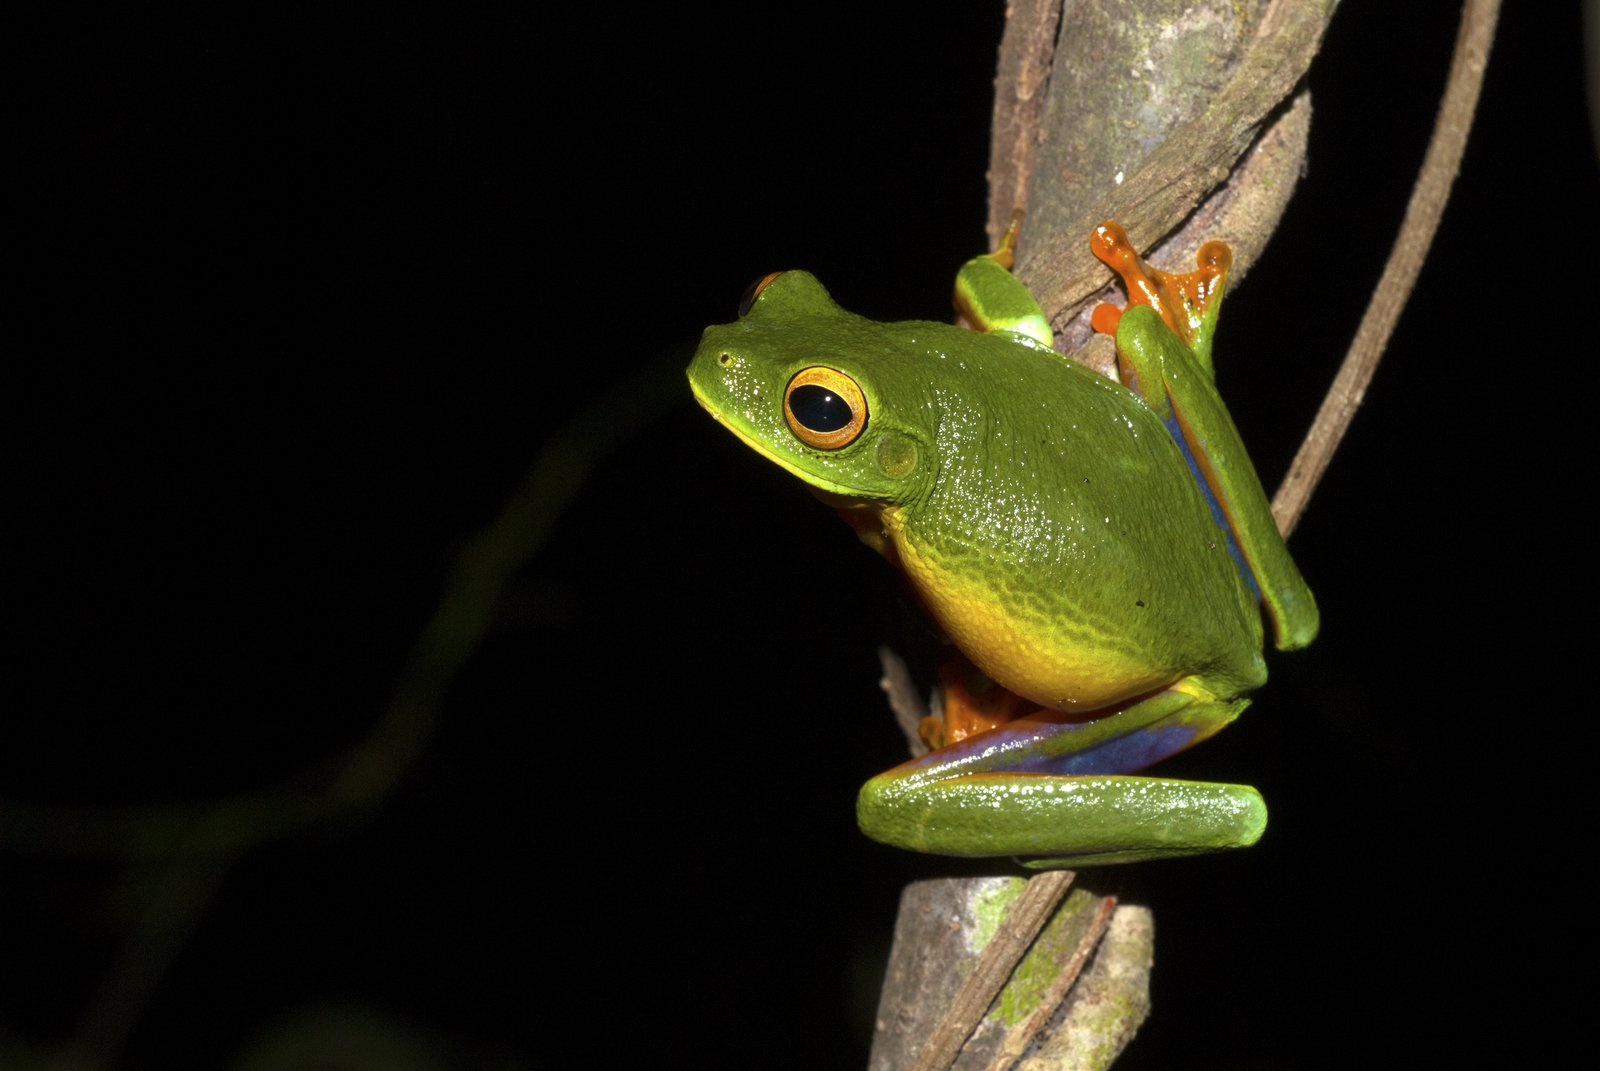 Cape York Graceful Tree Frog